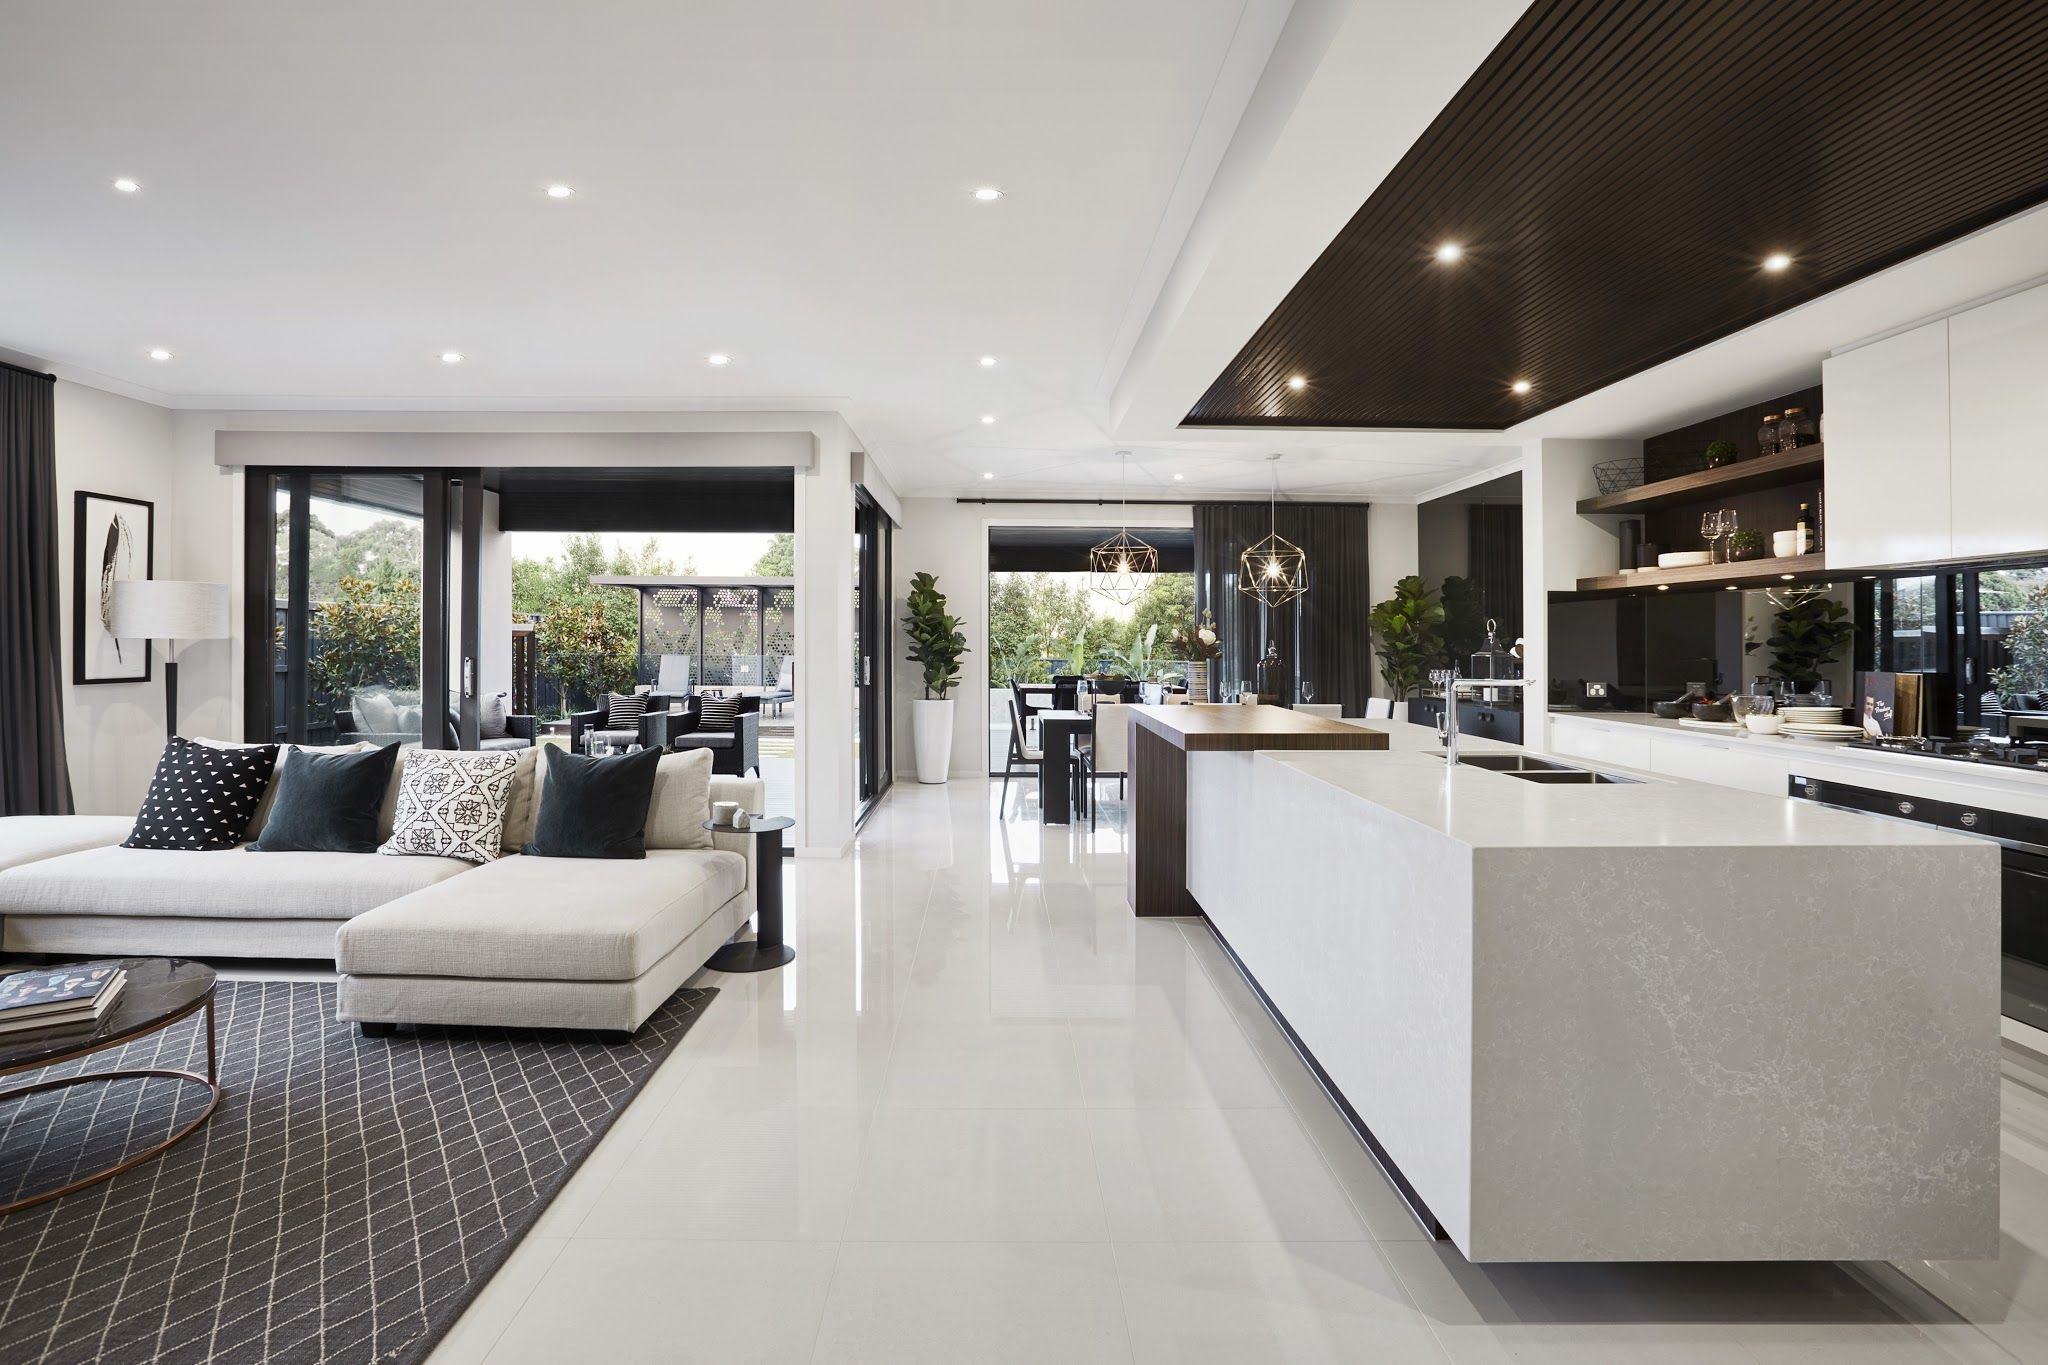 Offenes Wohn Esszimmer Küche Image Result For Glen Waverley Metricom Kitchen Pinterest